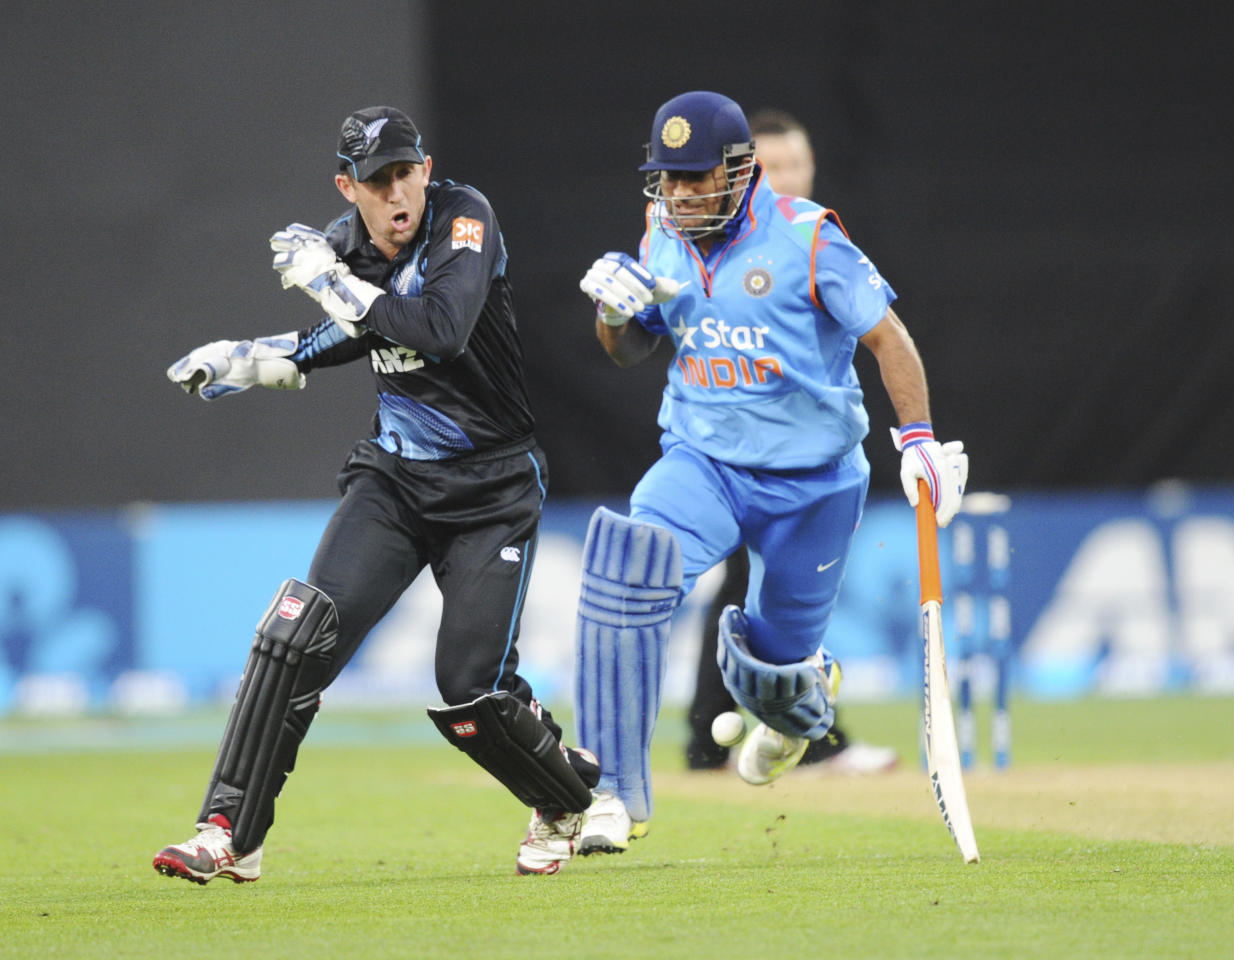 New Zealand's Luke Ronchi, left, and India's MS Dhoni bump eachother during the fifth one day International cricket match at Westpac Stadium in Wellington, New Zealand, Friday, Jan. 31, 2014. (AP Photo/SNPA, Ross Setford) NEW ZEALAND OUT